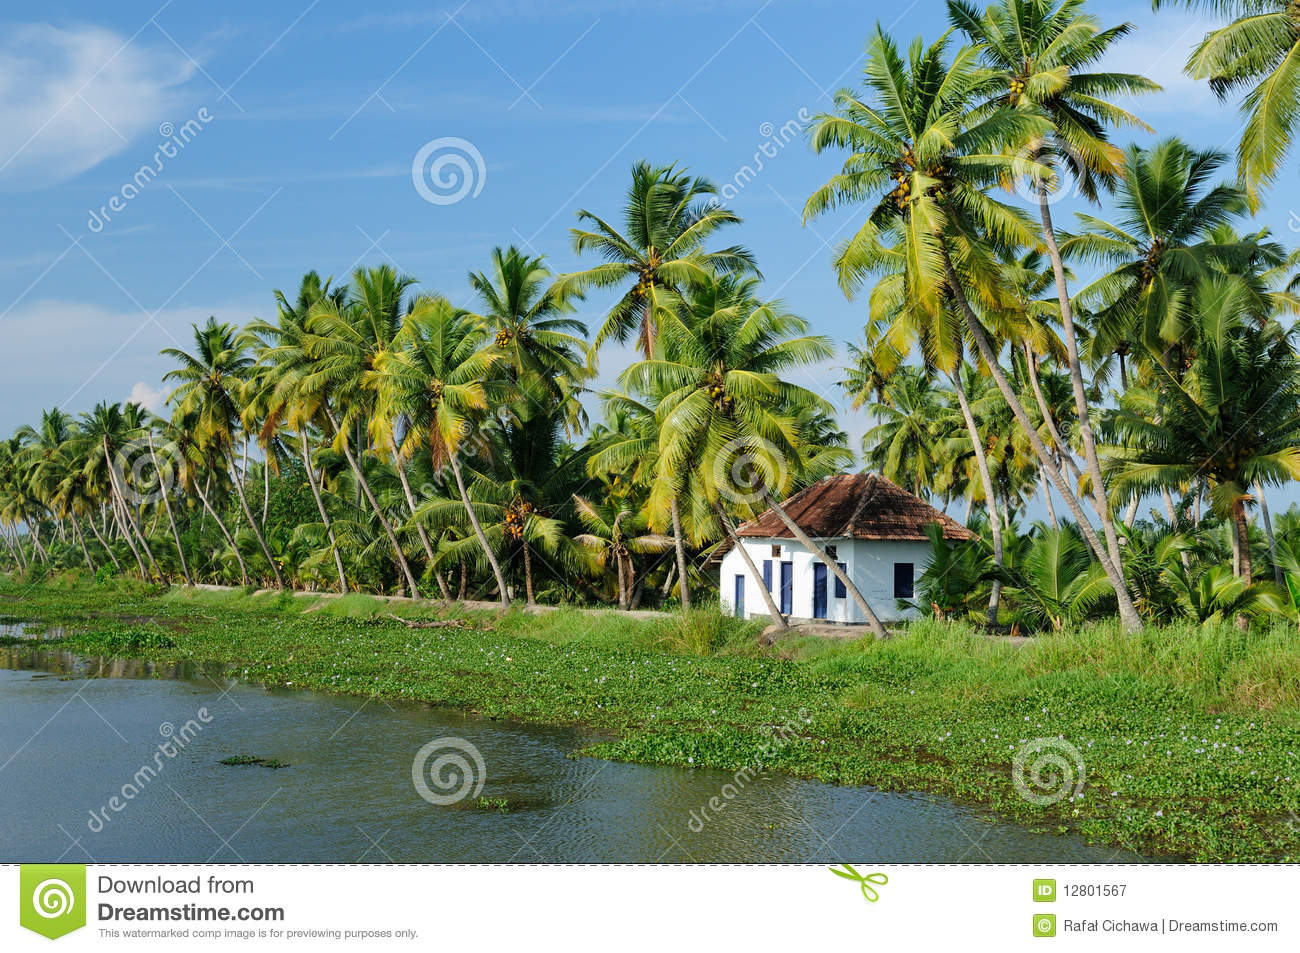 Download Kerala canal stock image. Image of environment, canal - 12801567